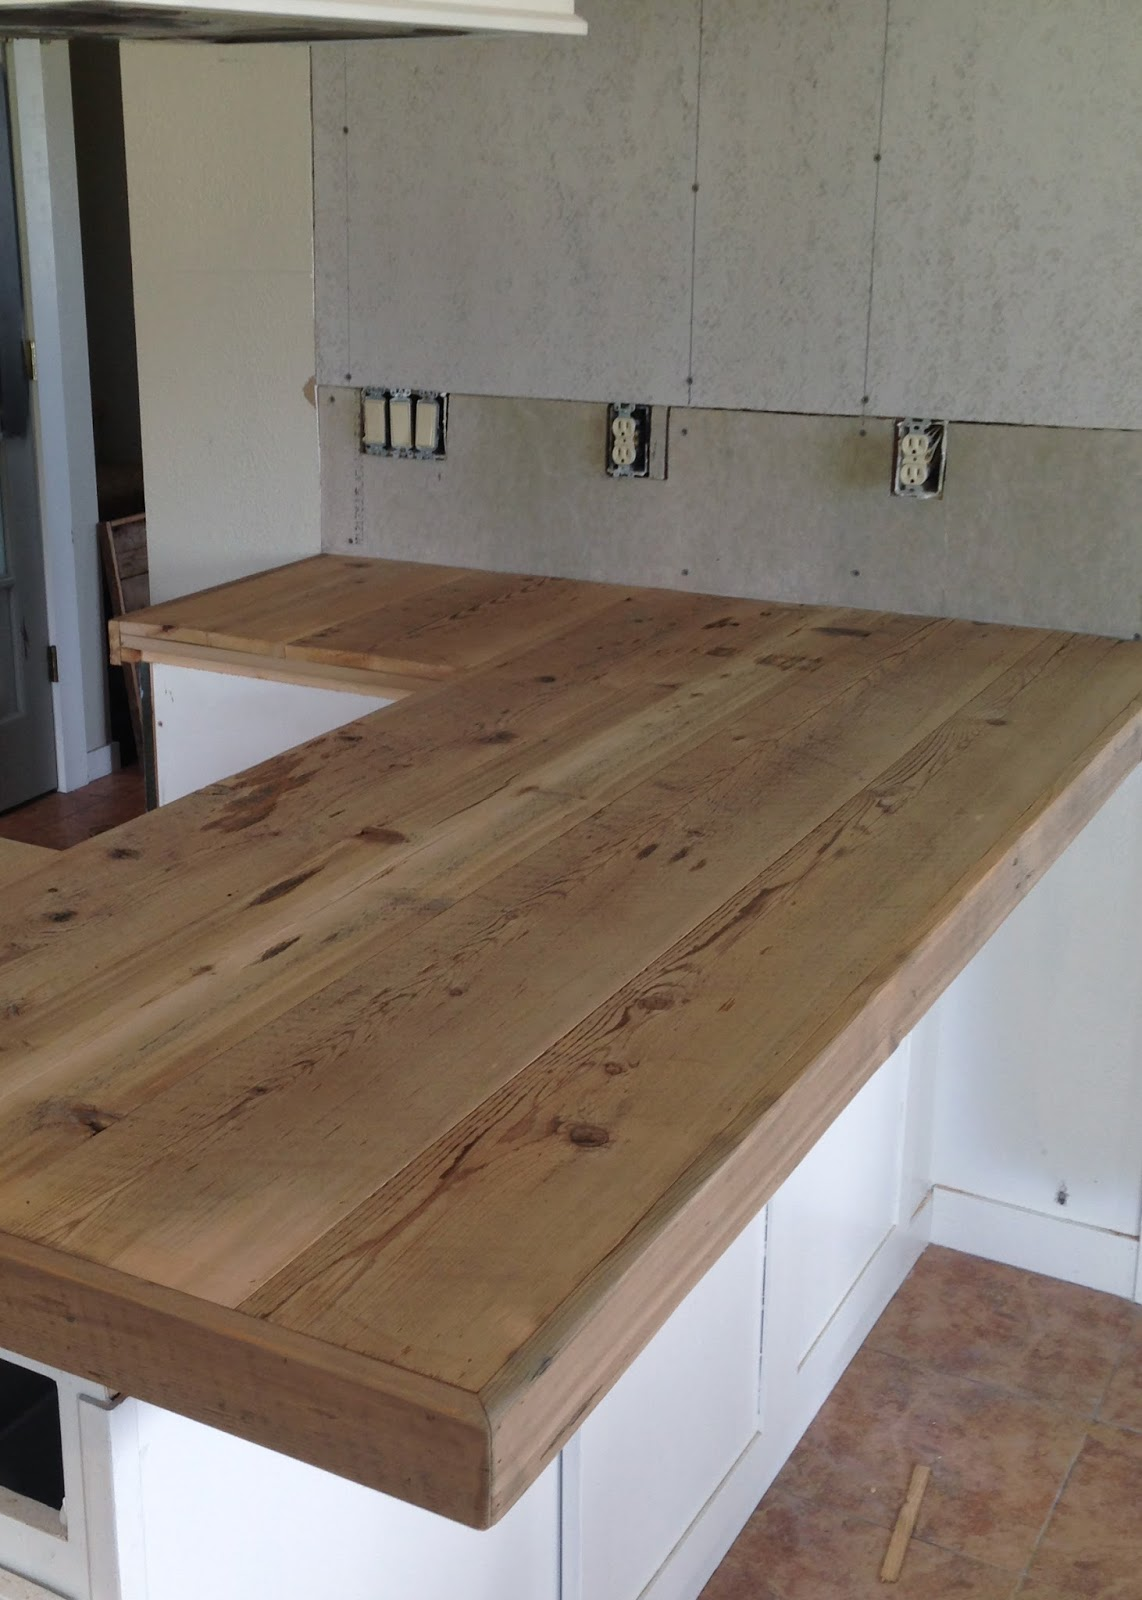 How To Build A Laminate Countertop Diy Reclaimed Wood Countertop Averie Lane Diy Reclaimed